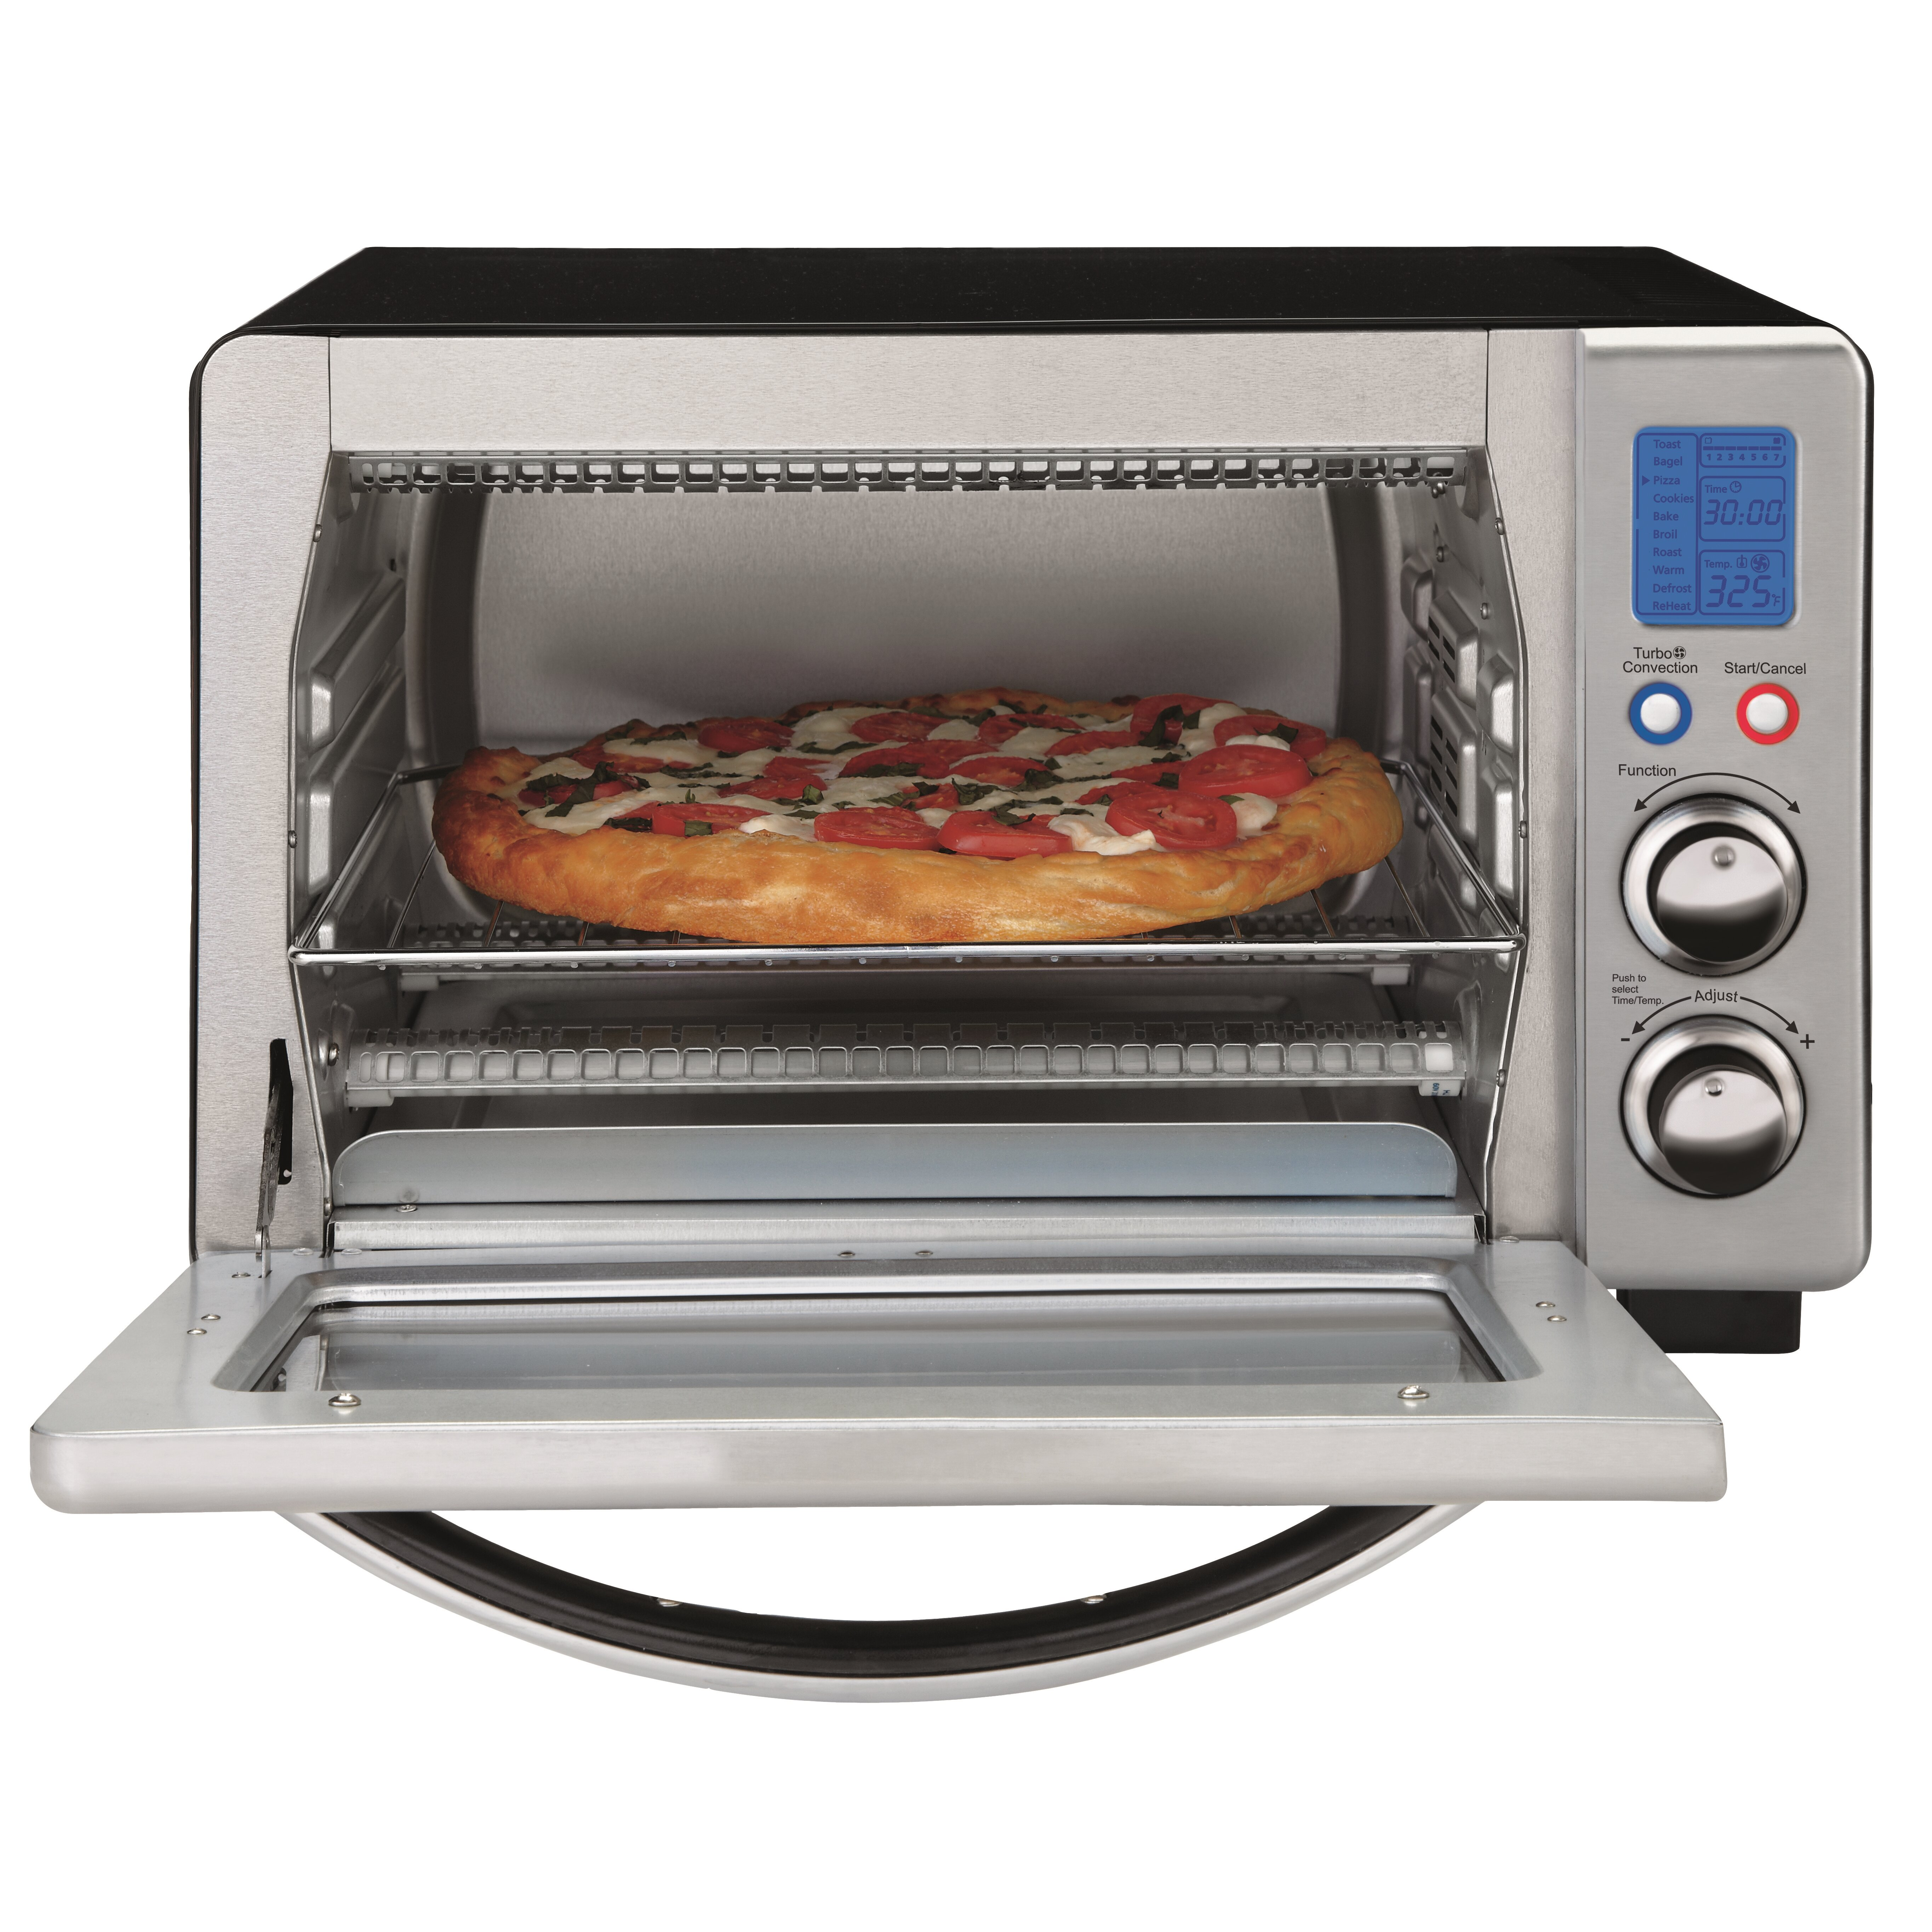 Oster Countertop Convection Oven Reviews : Toasters and Countertop Ovens Oster SKU: OST1212